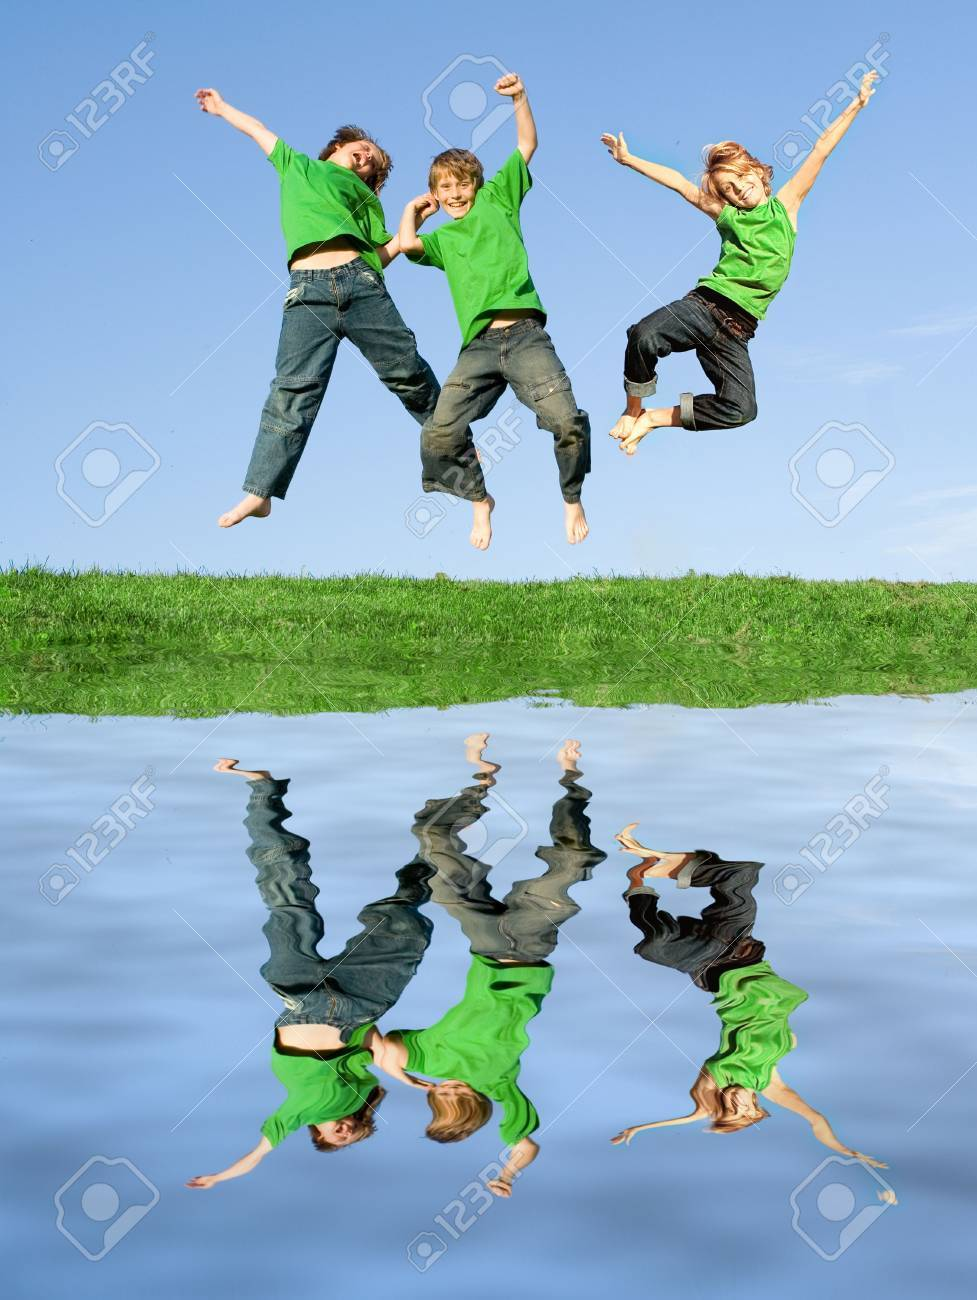 (only 2 children used in image so only 2 releases) Stock Photo - 2592591